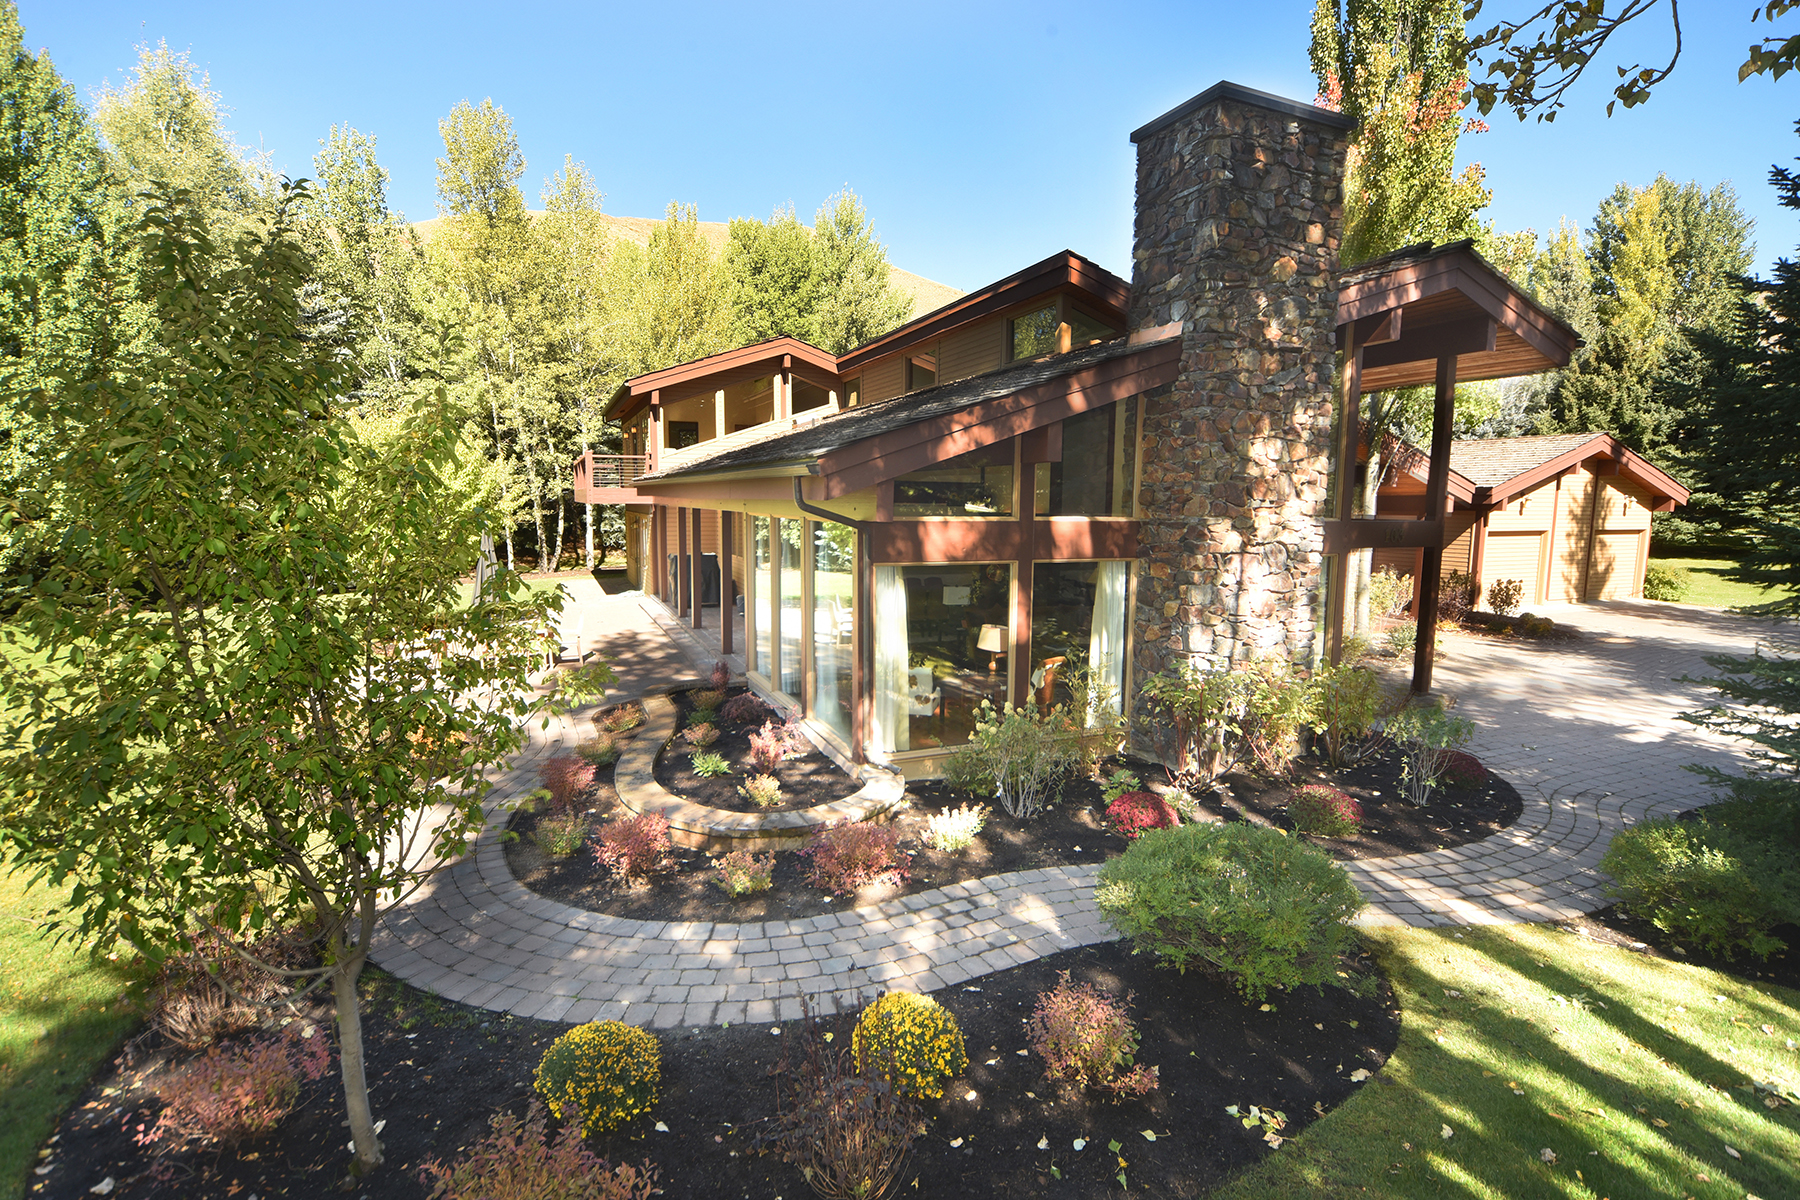 Single Family Home for Active at Classic Sun Valley 103 Proctor Mountain Rd Sun Valley, Idaho 83353 United States